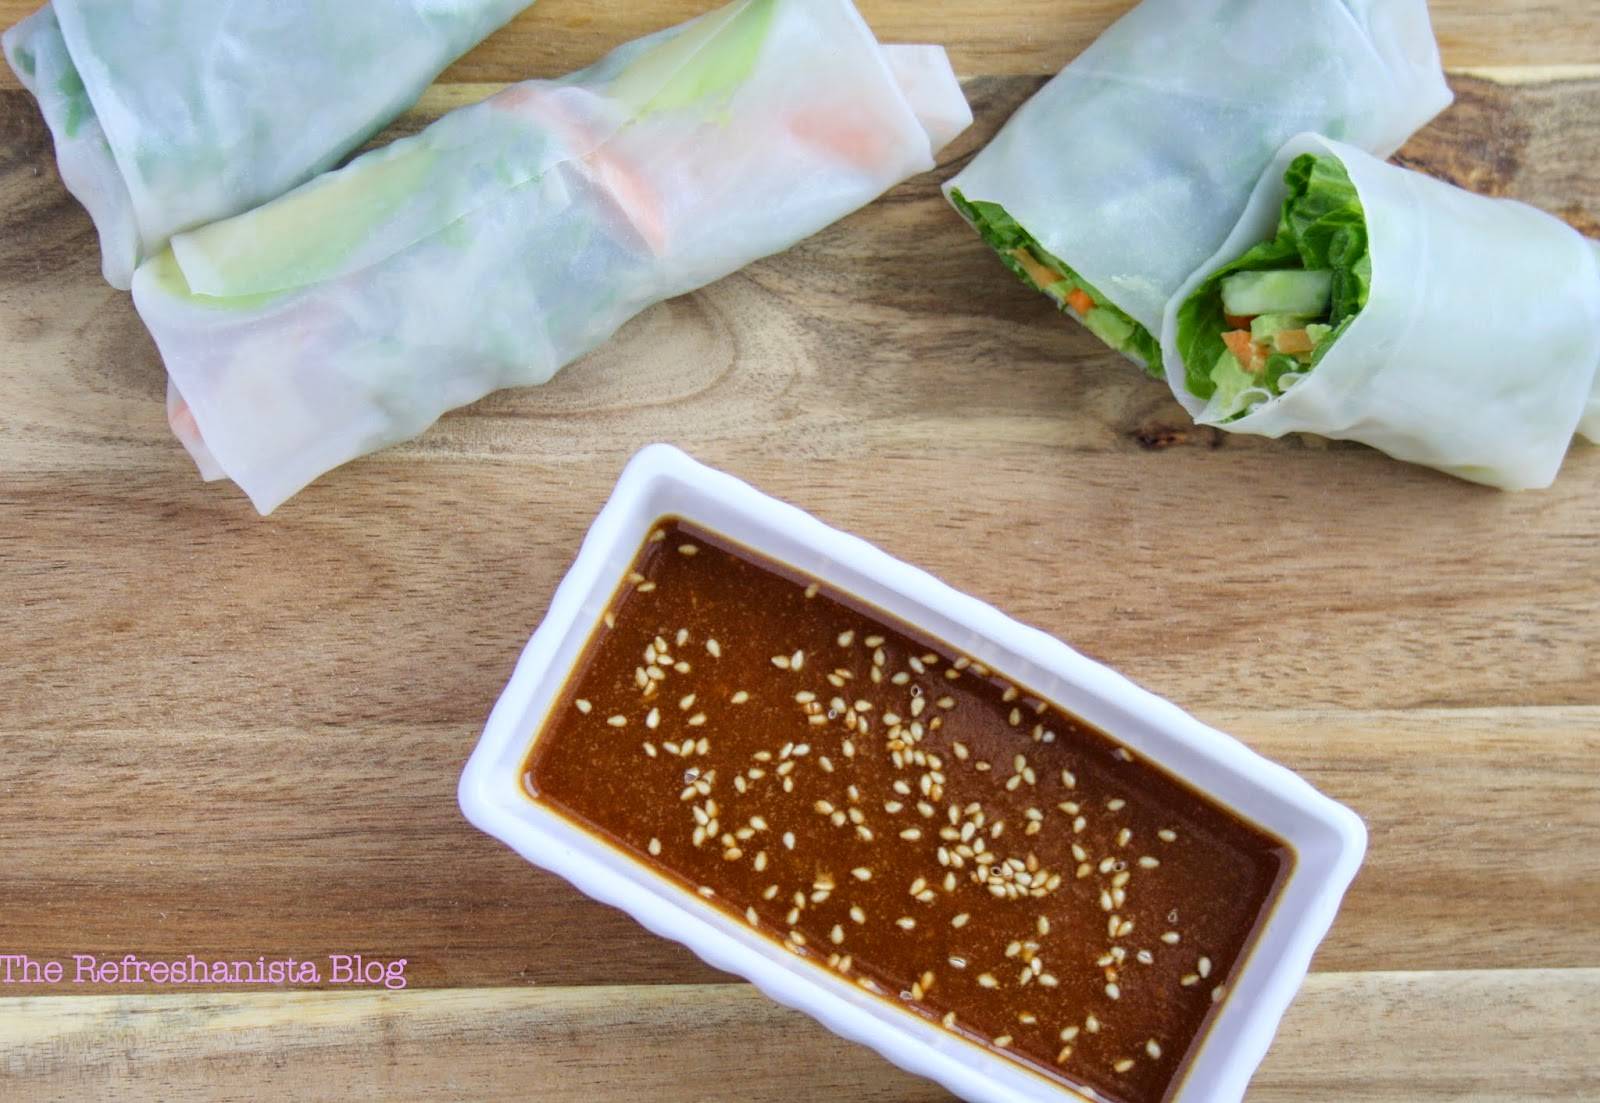 Vegetable Summer Rolls- fresh, simple, and full of veggies! | The Refreshanista Blog